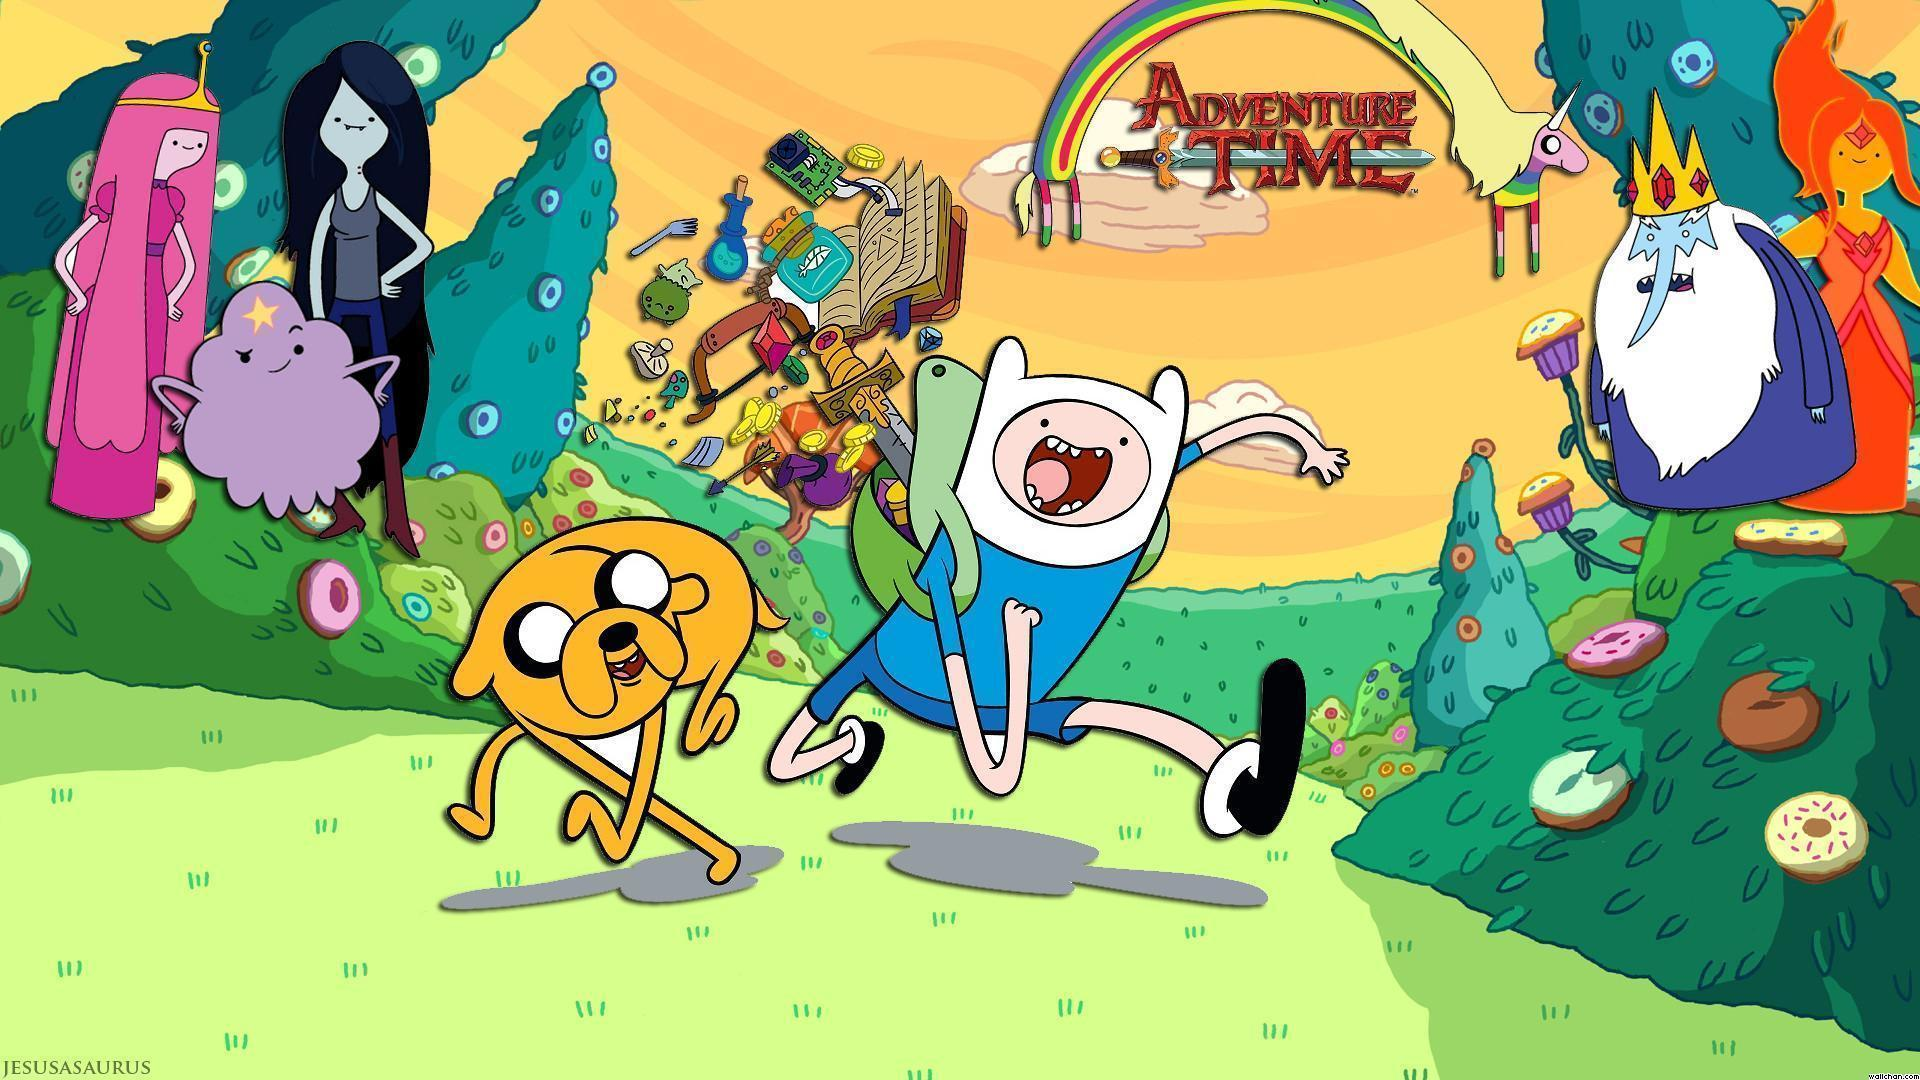 Adventure Time Wallpapers and Backgrounds - w8themes